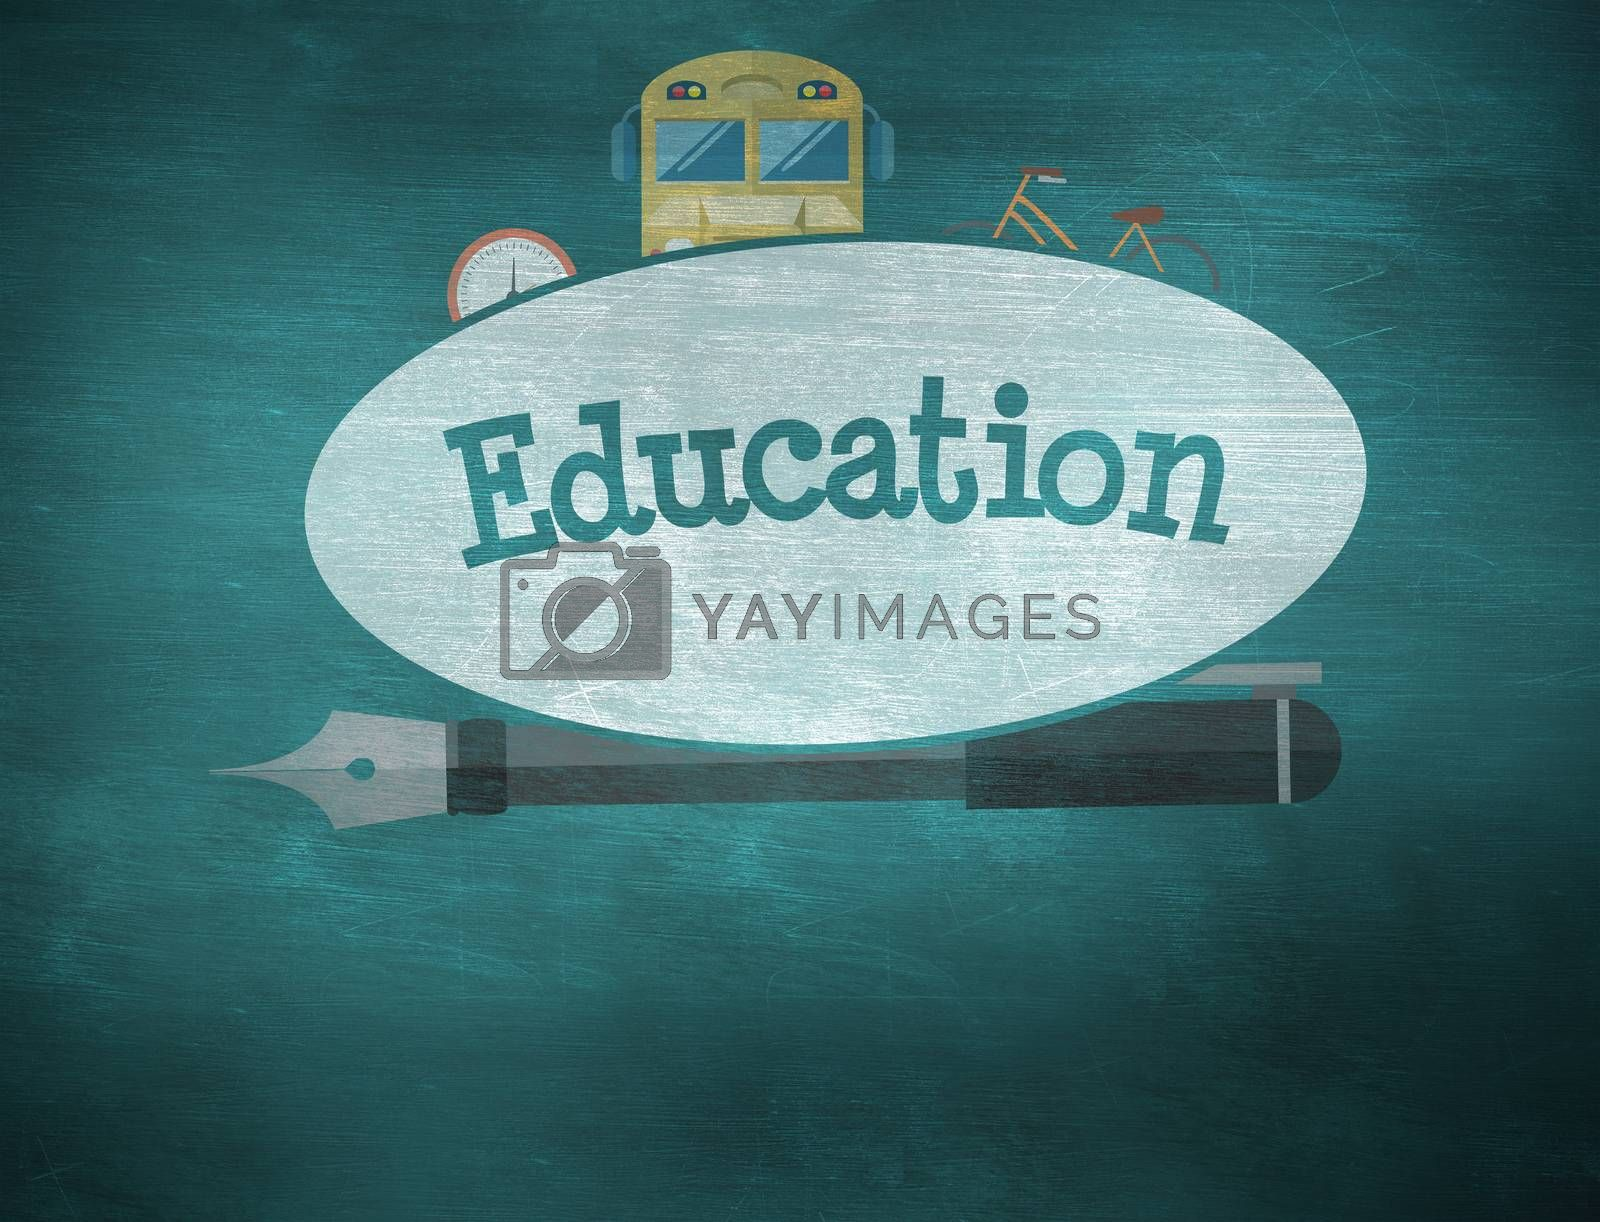 Education against green chalkboard by Wavebreakmedia